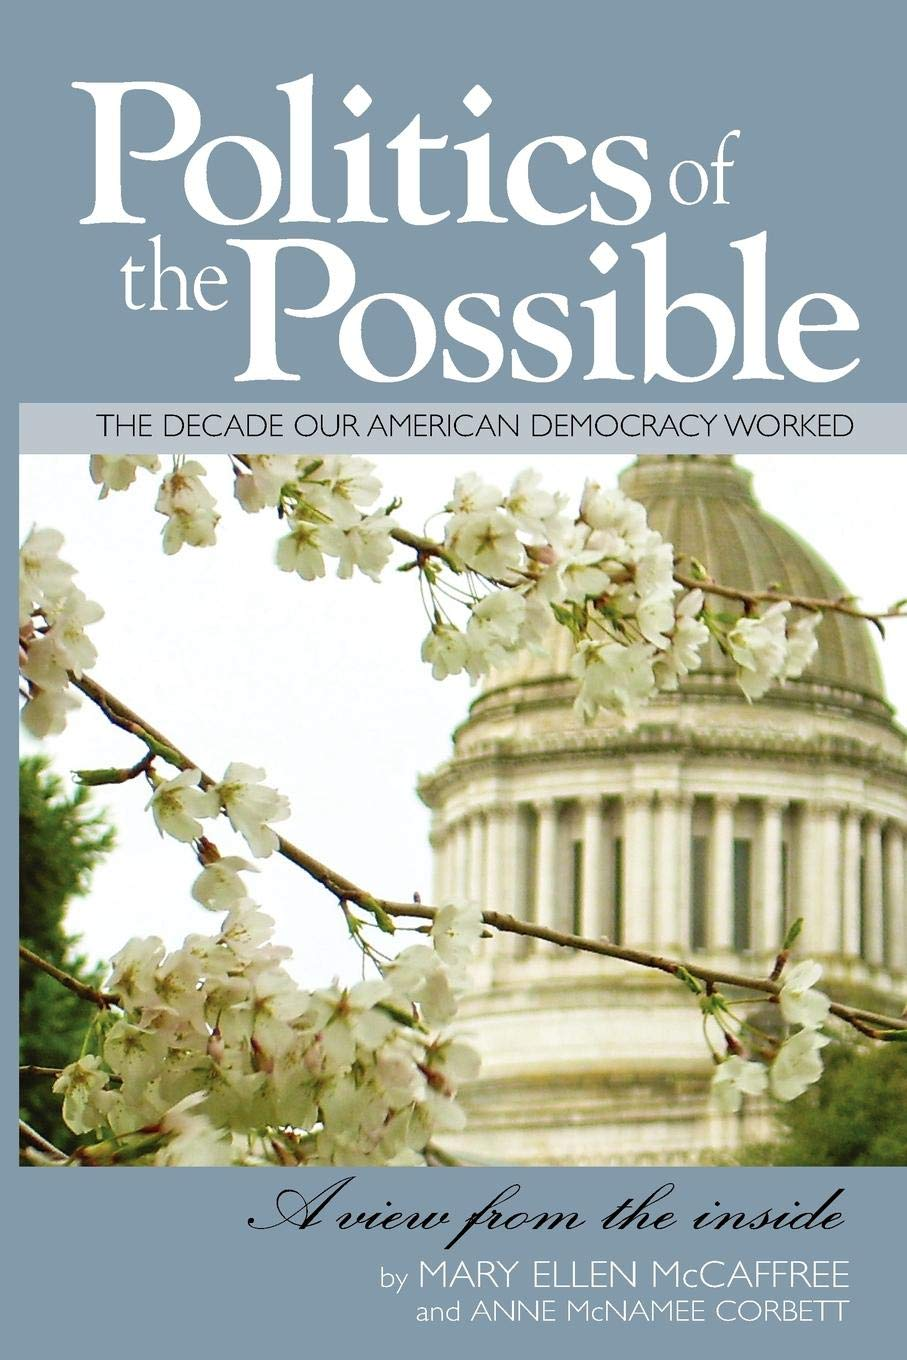 Politics of the Possible: Mary Ellen McCaffree, Anne McNamee